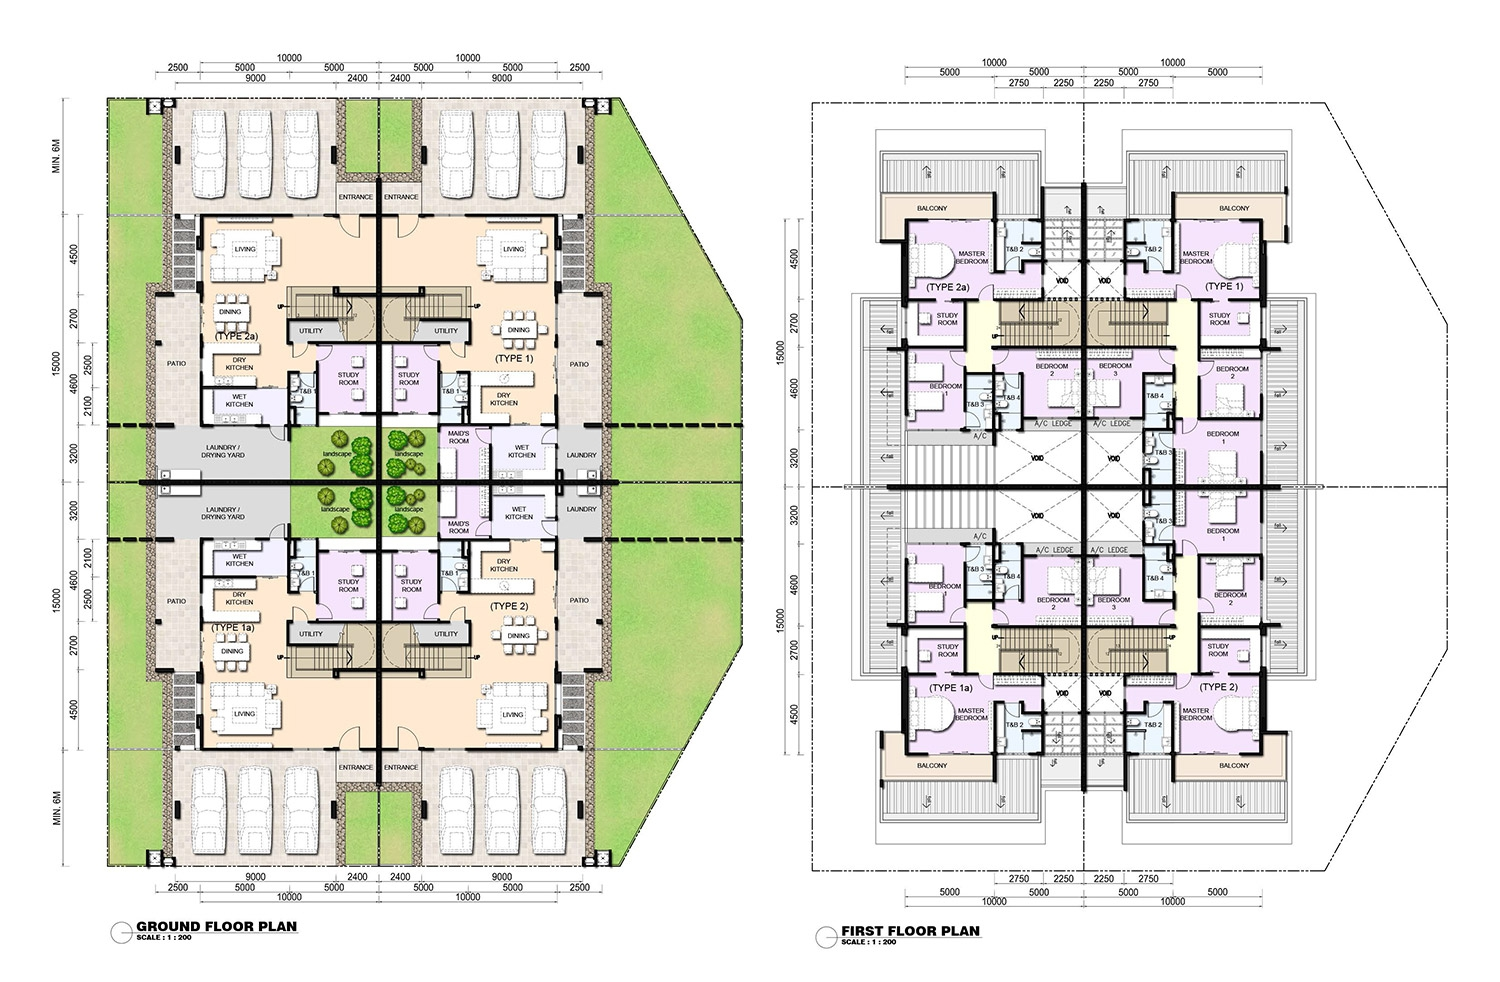 Quadruplex floor plans carpet vidalondon for Quadruplex floor plans